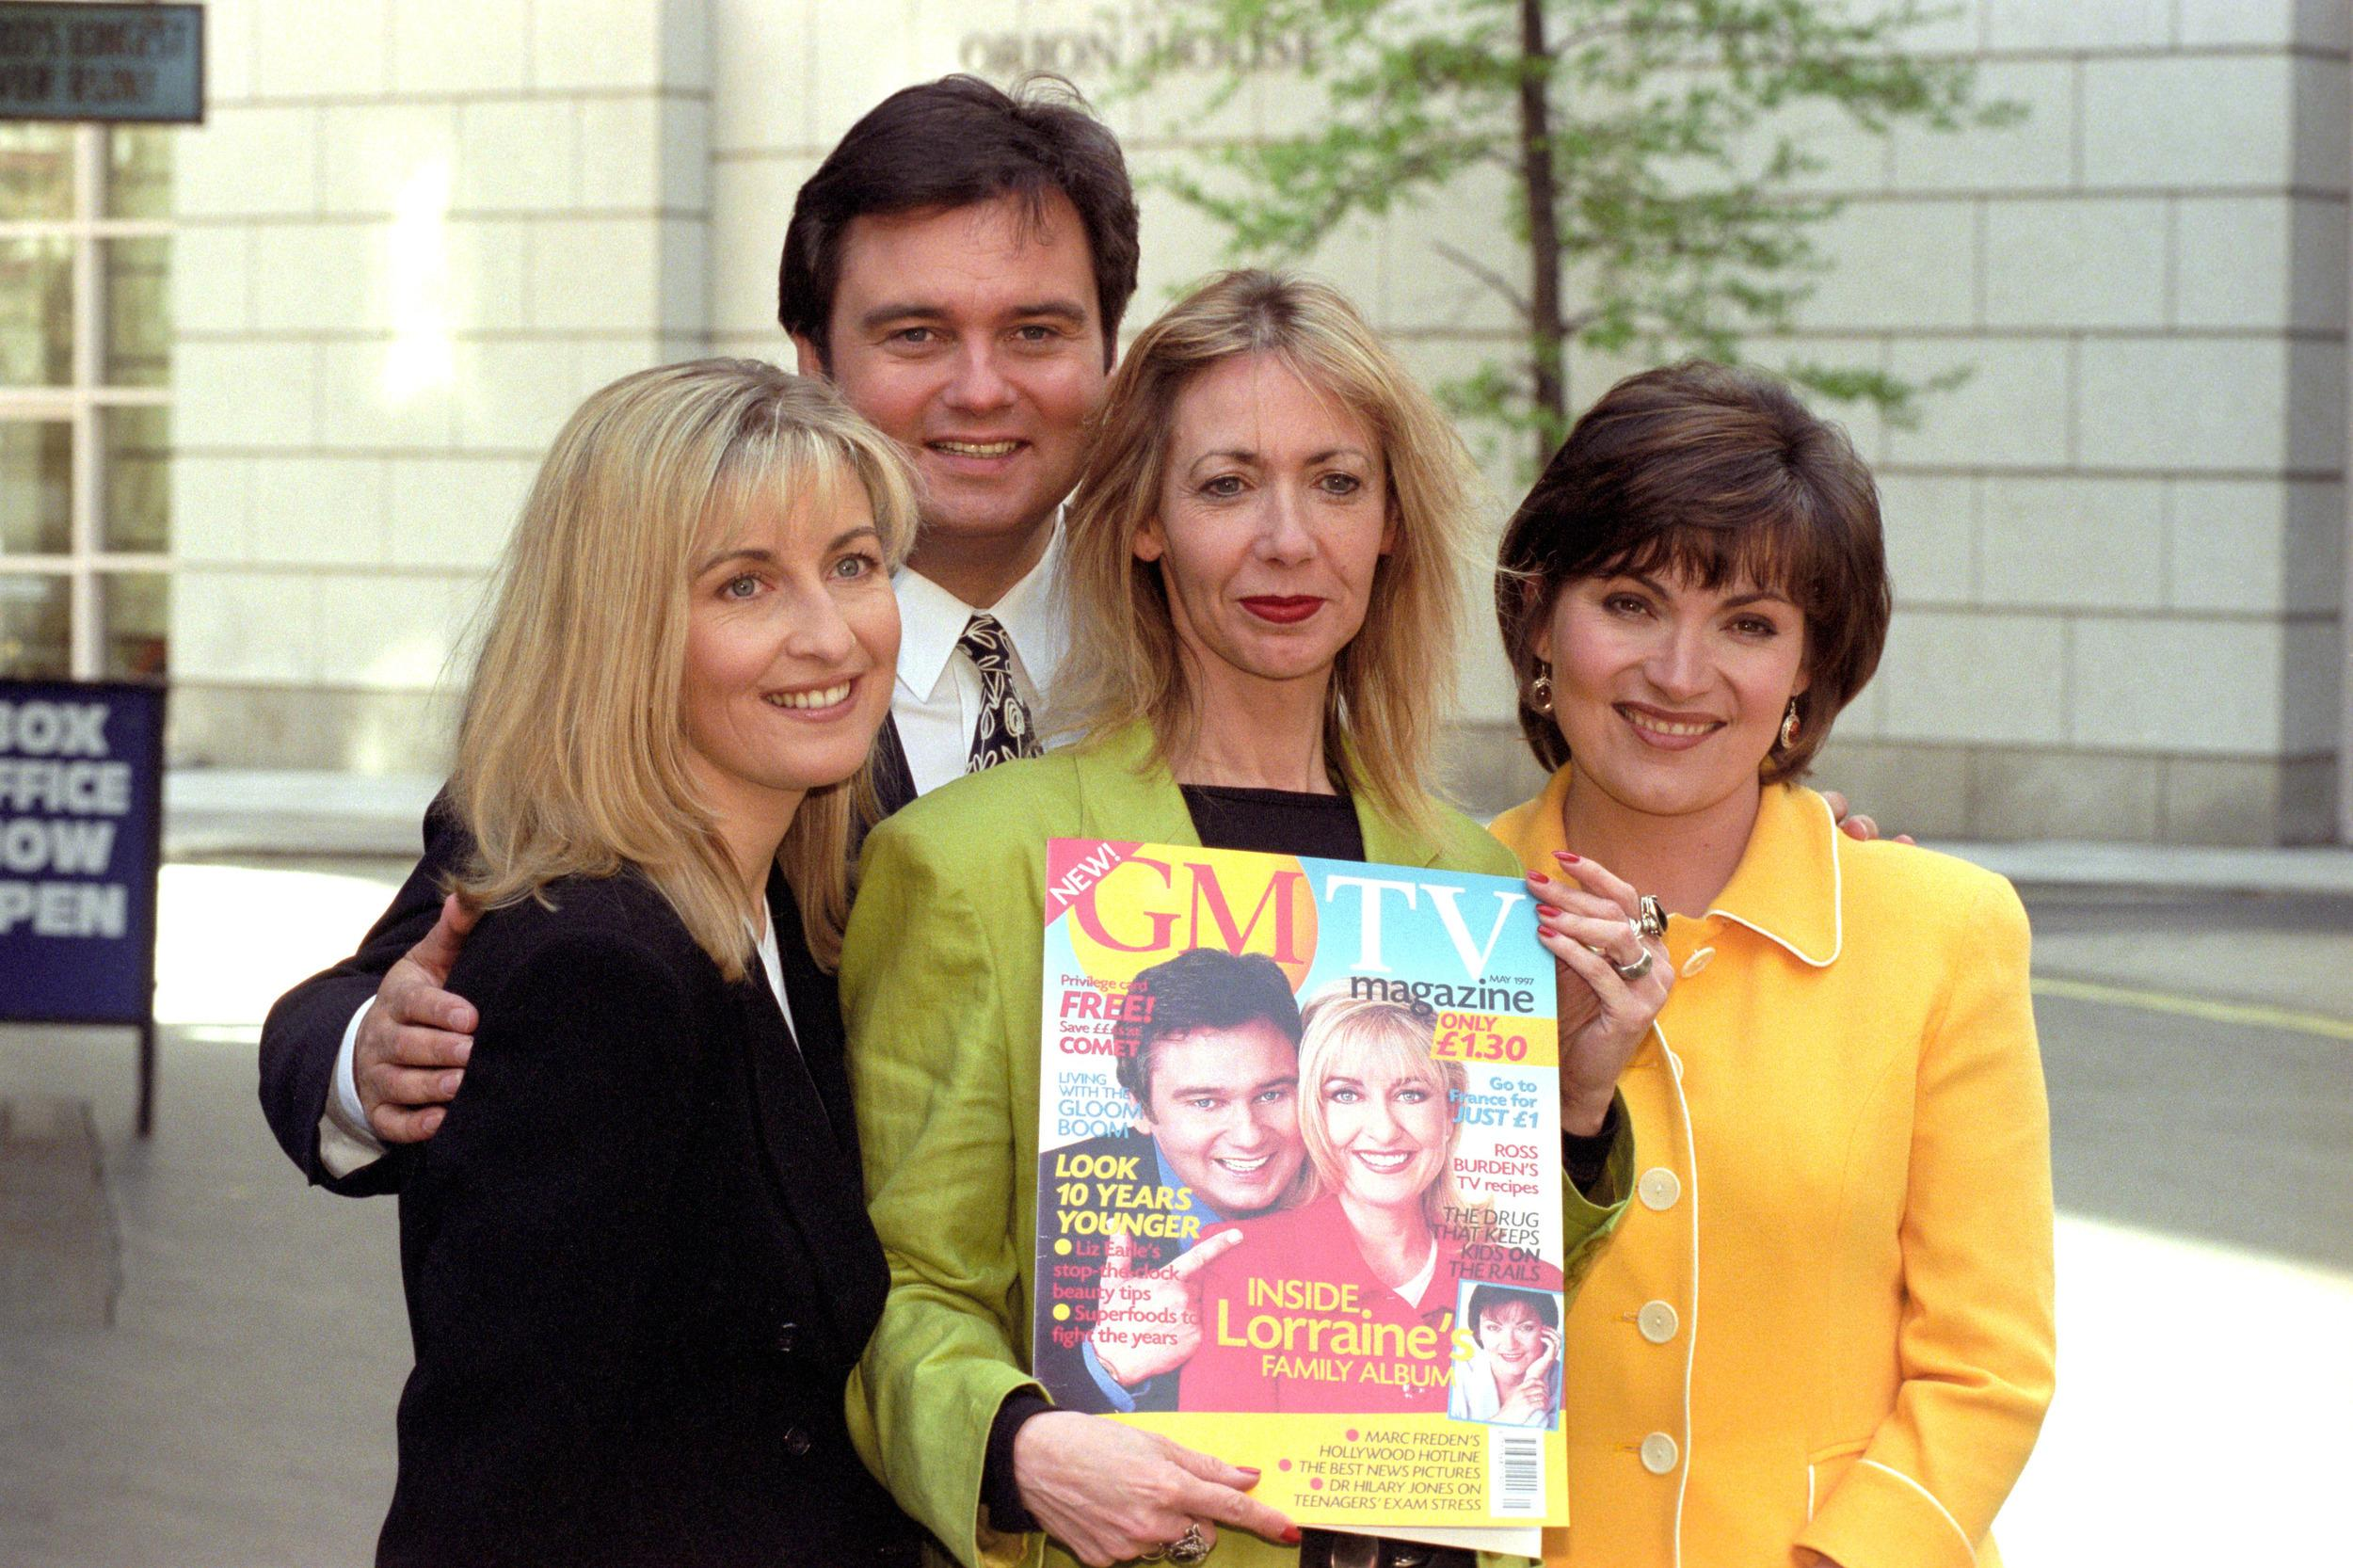 GMTV PRESENTERS FIONA PHILLIPS (l) EAMONN HOLMES (2nd l) and Lorraine Kelly (r) AT THE LAUNCH OF THEIR NEW MONTHLY MAGAZINE IN LONDON. THE MAGAZINE WILL OFFER READERS THE CHANCE TO LEARN MORE ABOUT THEIR FAVOURITE TV PROGRAMMES.